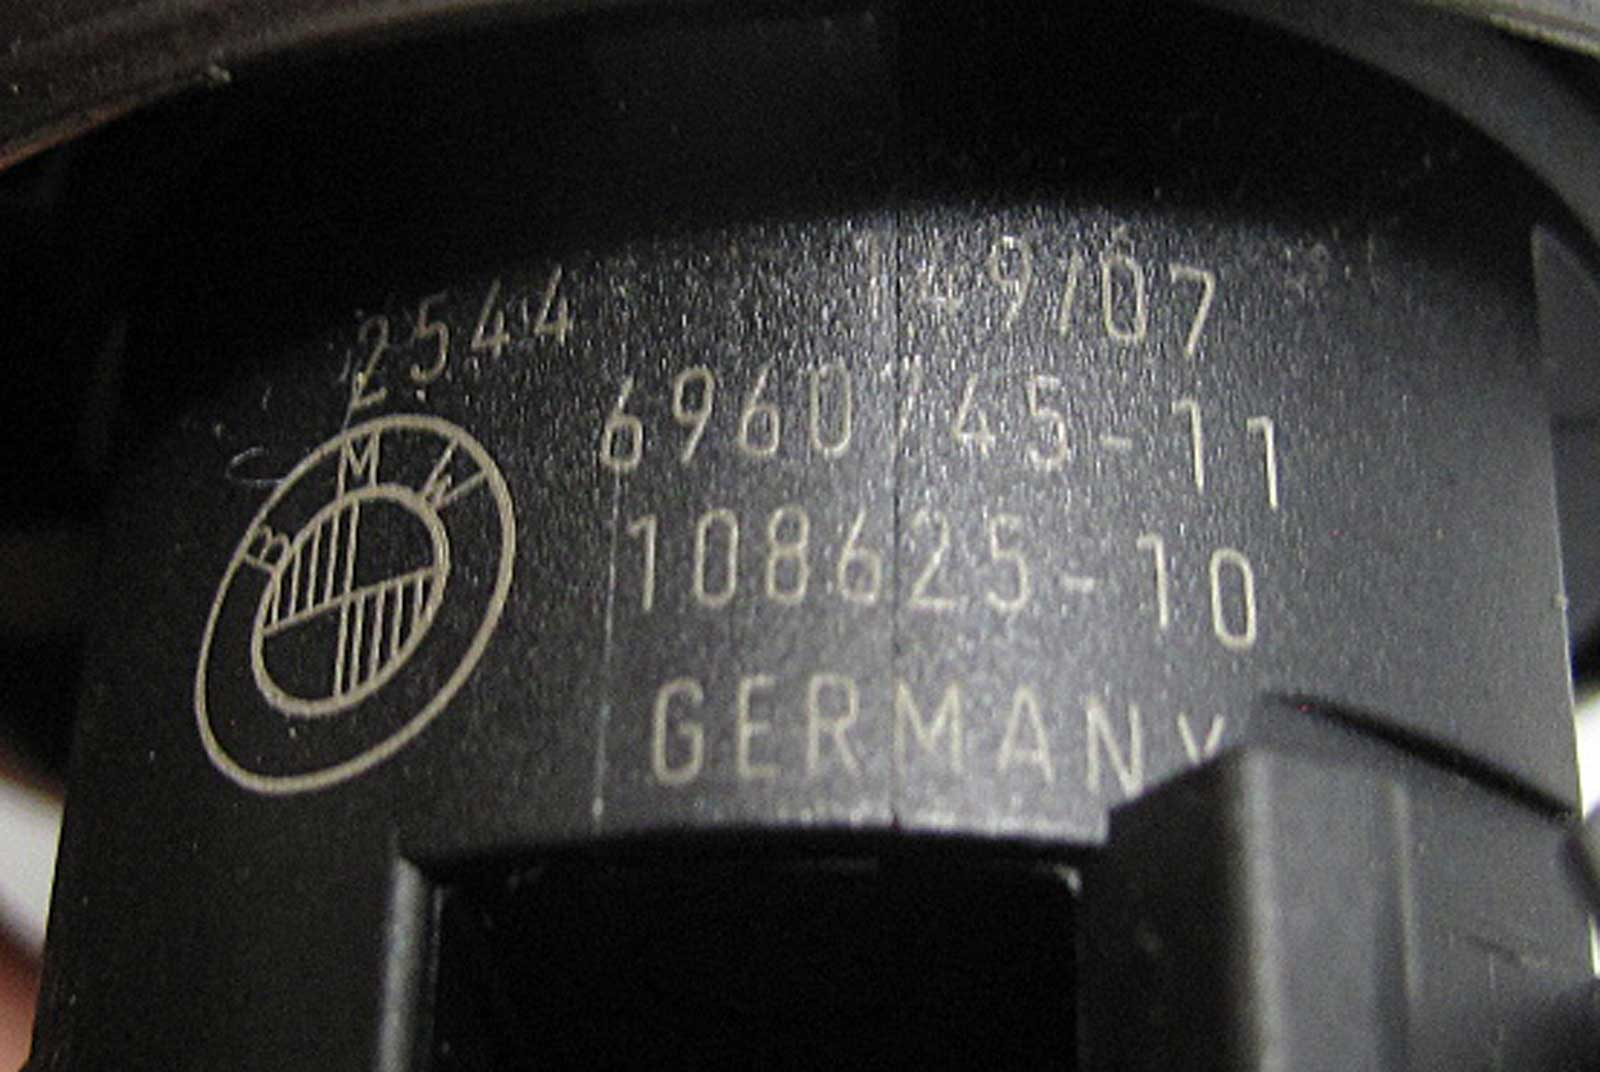 2006 2007 Bmw E63 E64 650i Engine Start Stop Toggle Ignition 325i Switch Please Note That The Pictures Are Stock Photos